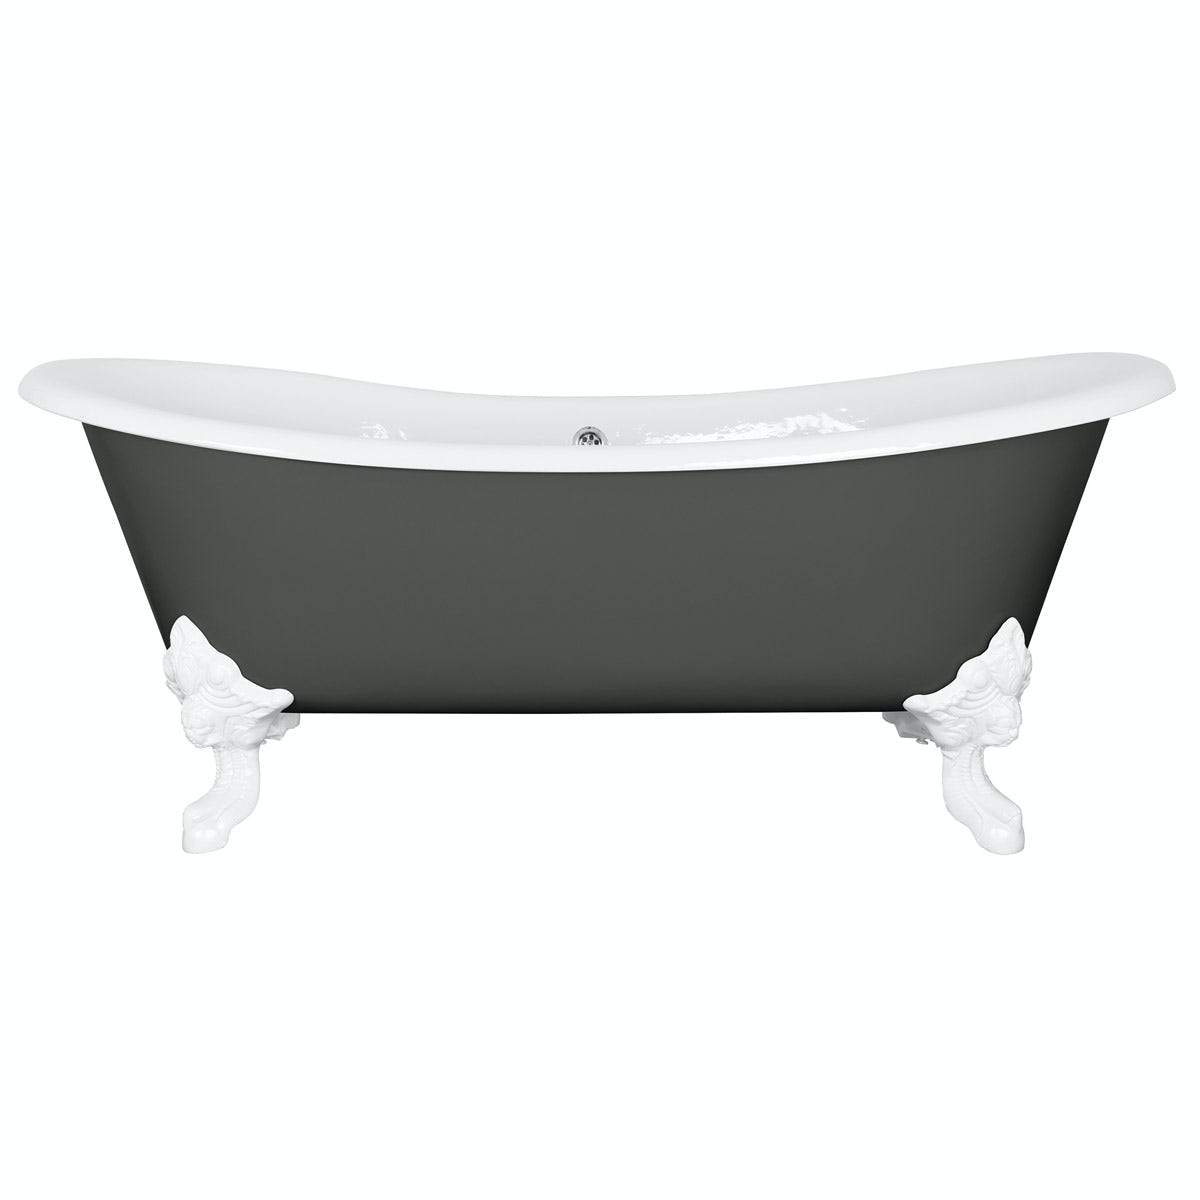 The Bath Co. Dover smoke grey cast iron bath